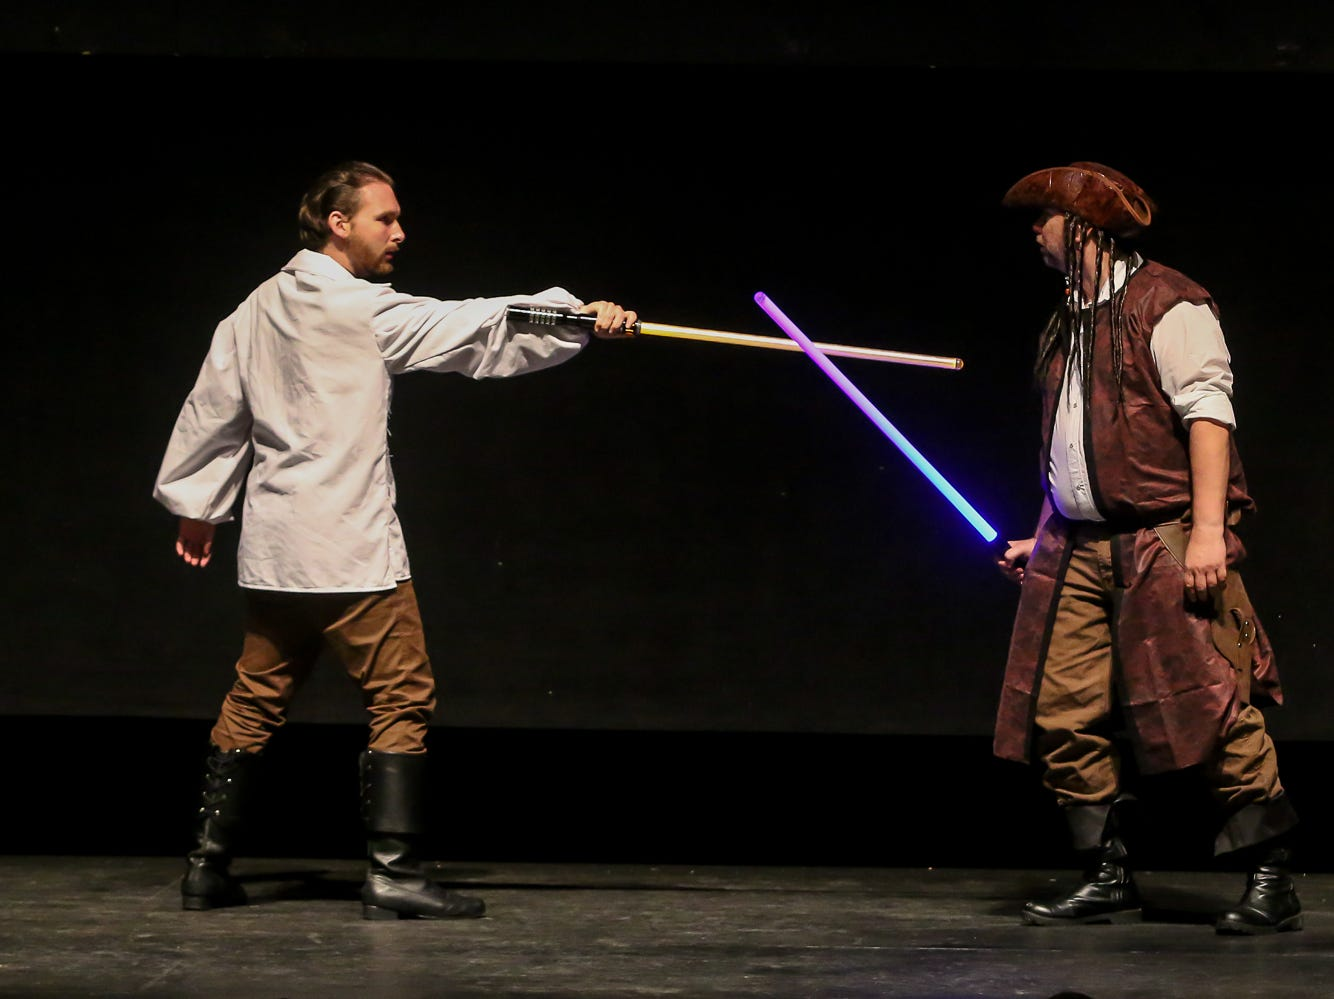 Gulf Coast Lightsaber Training performs during the Pensacon cosplay contest presented by McGuire's Irish Pub at the Saenger Theatre on Saturday, February 23, 2019.